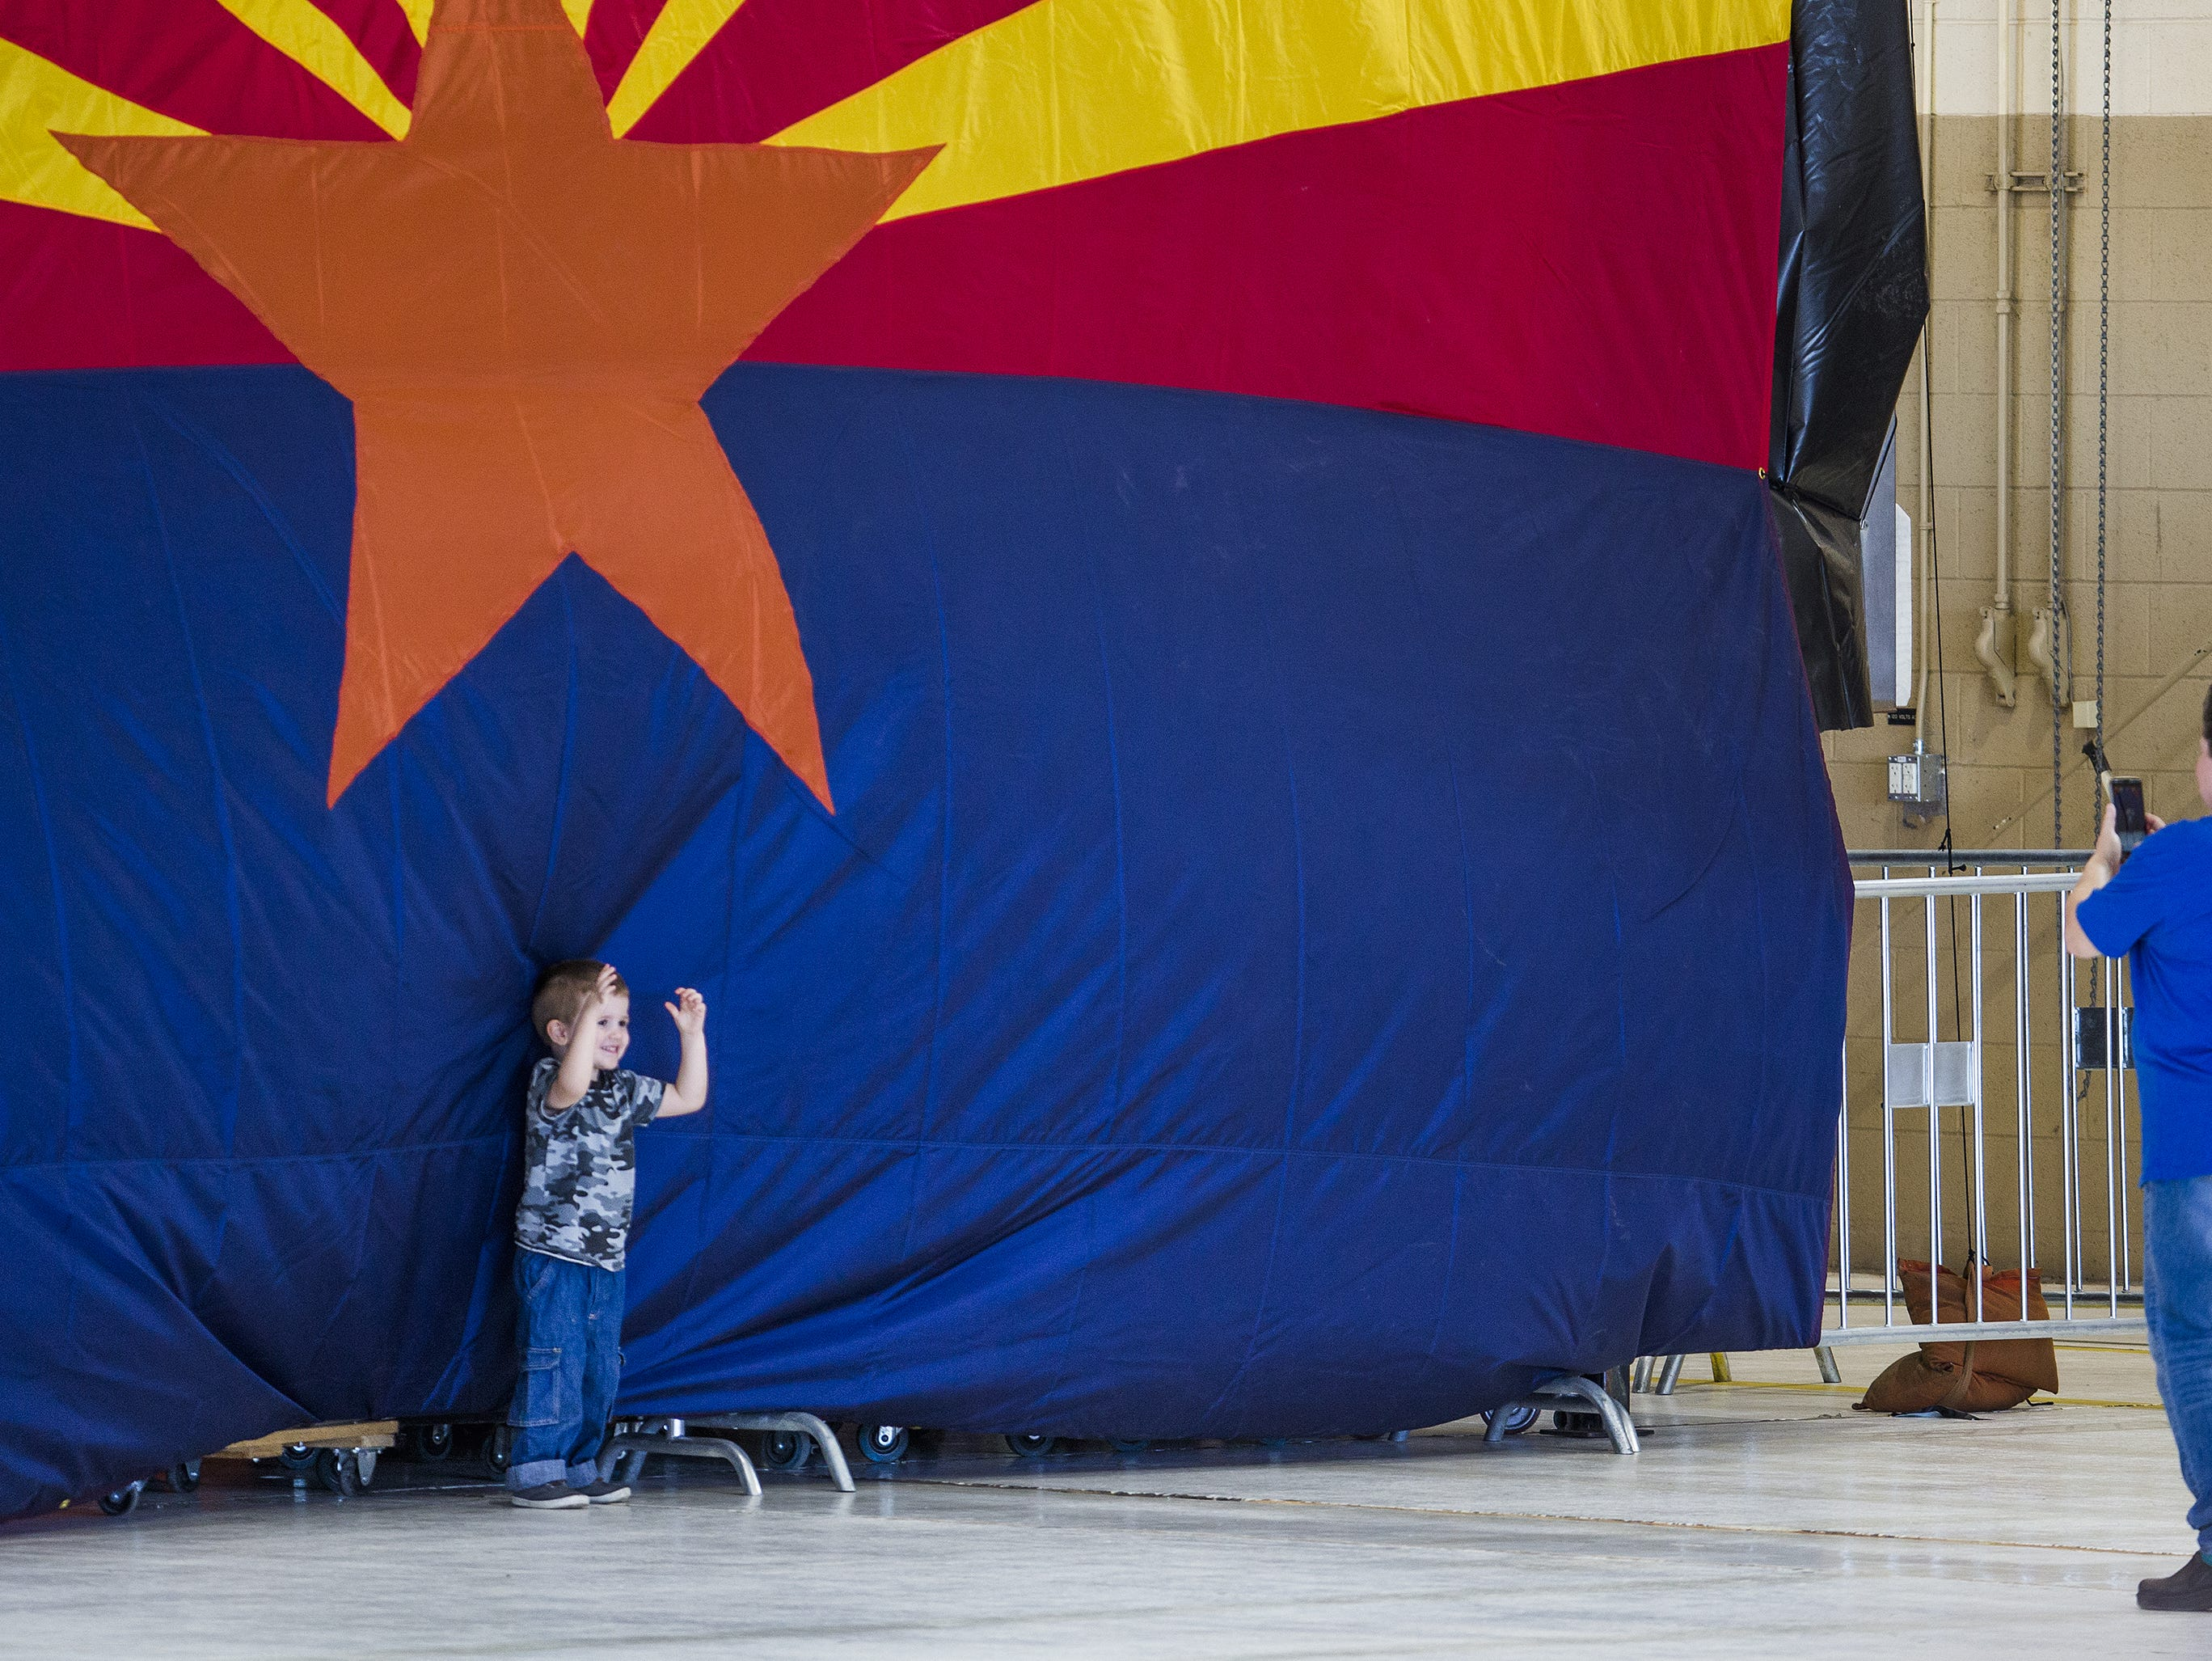 People take photos inside the International Air Response Hangar at Phoenix Mesa Gateway Airport on Oct. 19, 2018. The crowd had several hours to wait for President Donald Trump to appear Friday evening for a rally supporting Senate candidate Martha McSally.